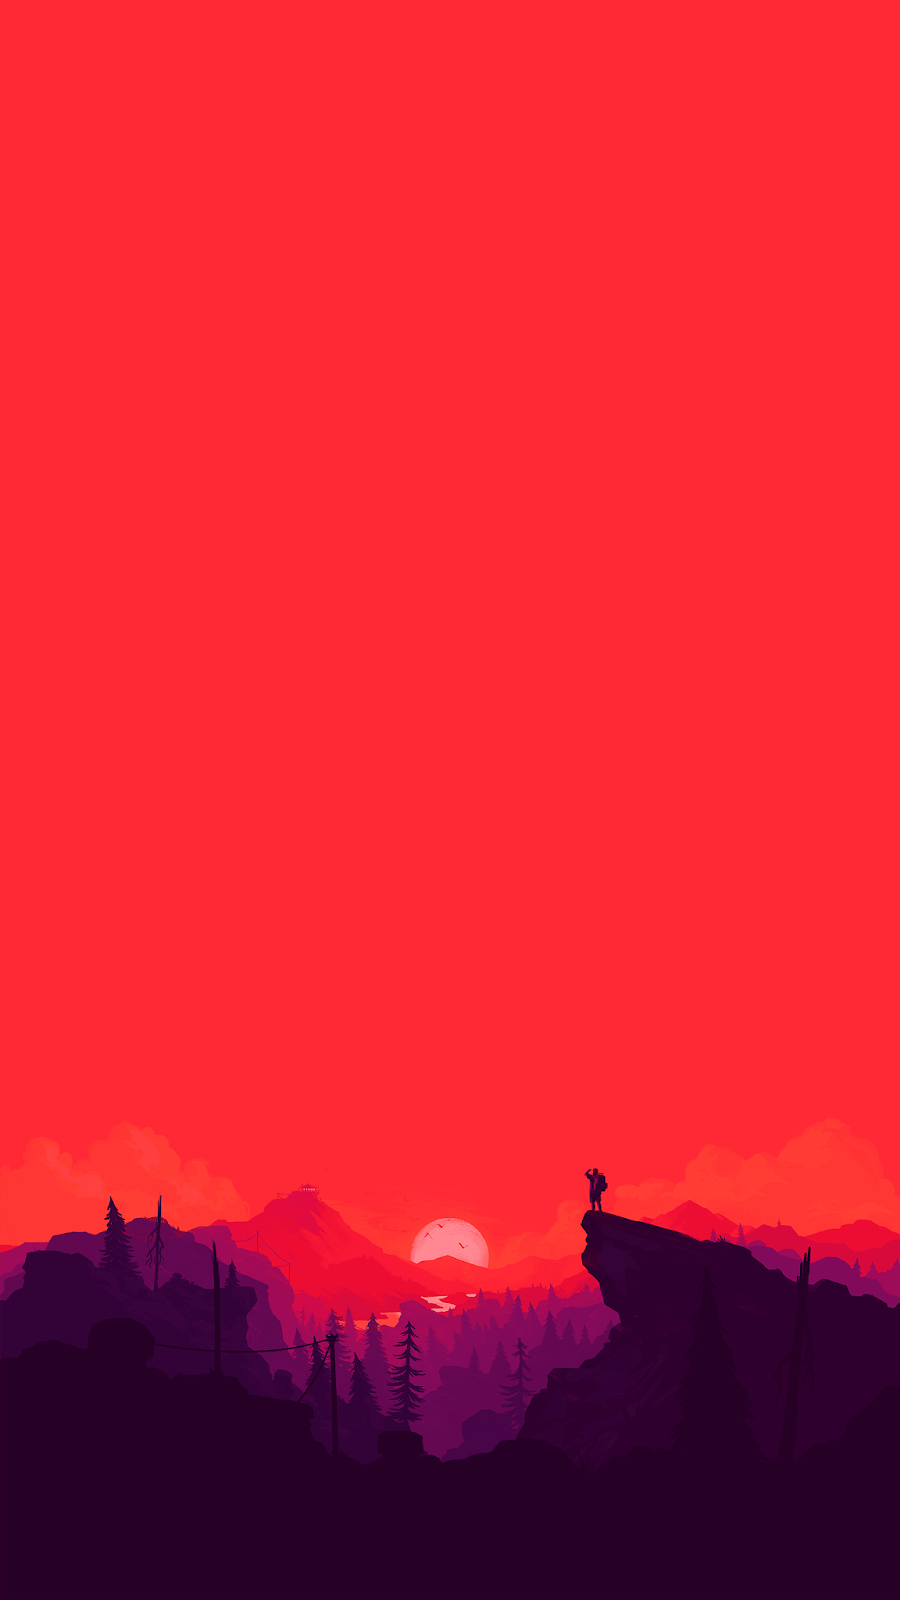 sunset illustration simple background wallpaper for phone in 4k